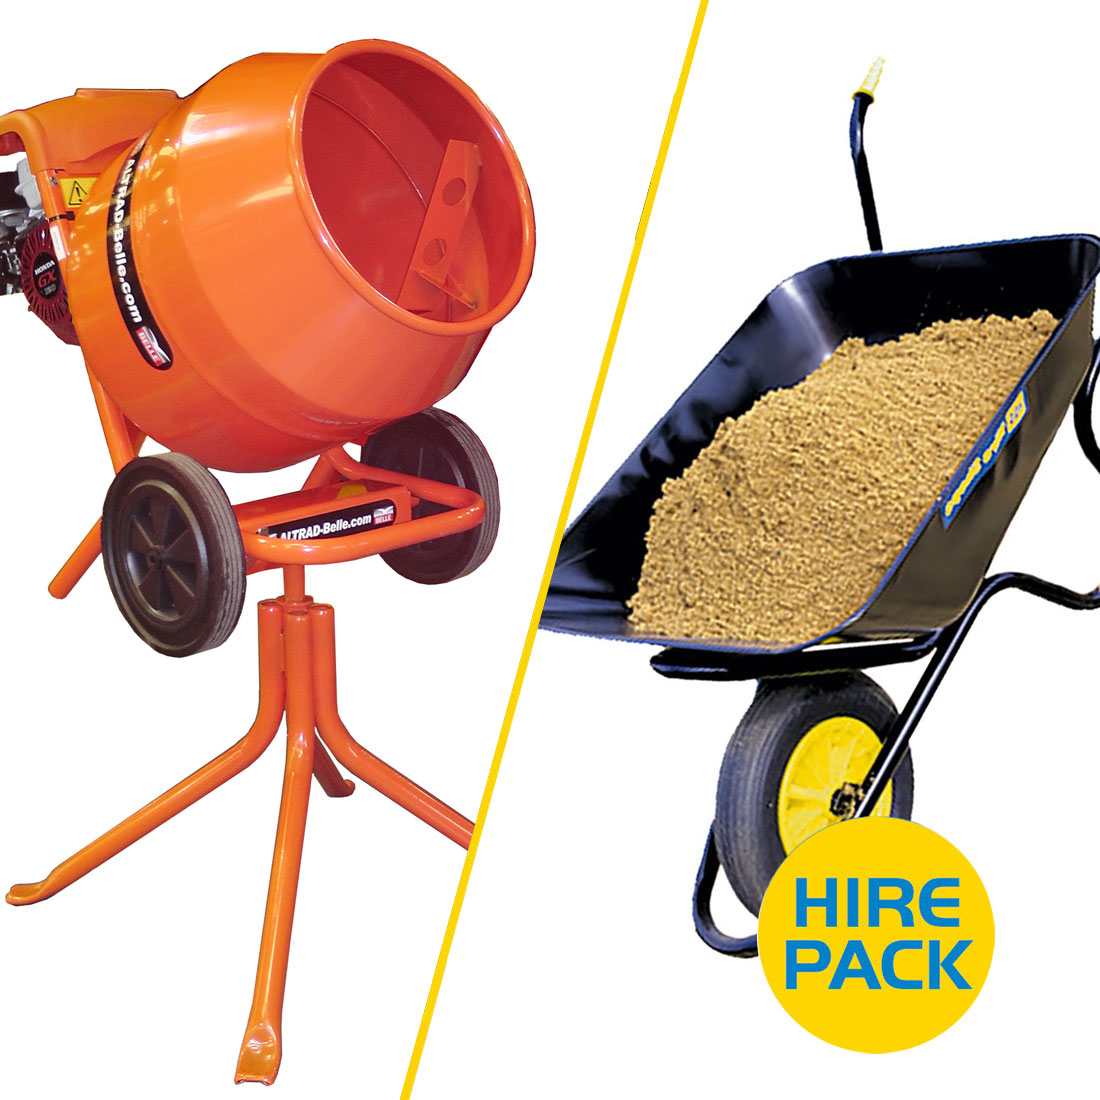 Tip-Up Concrete Mixer Hire Pack 1